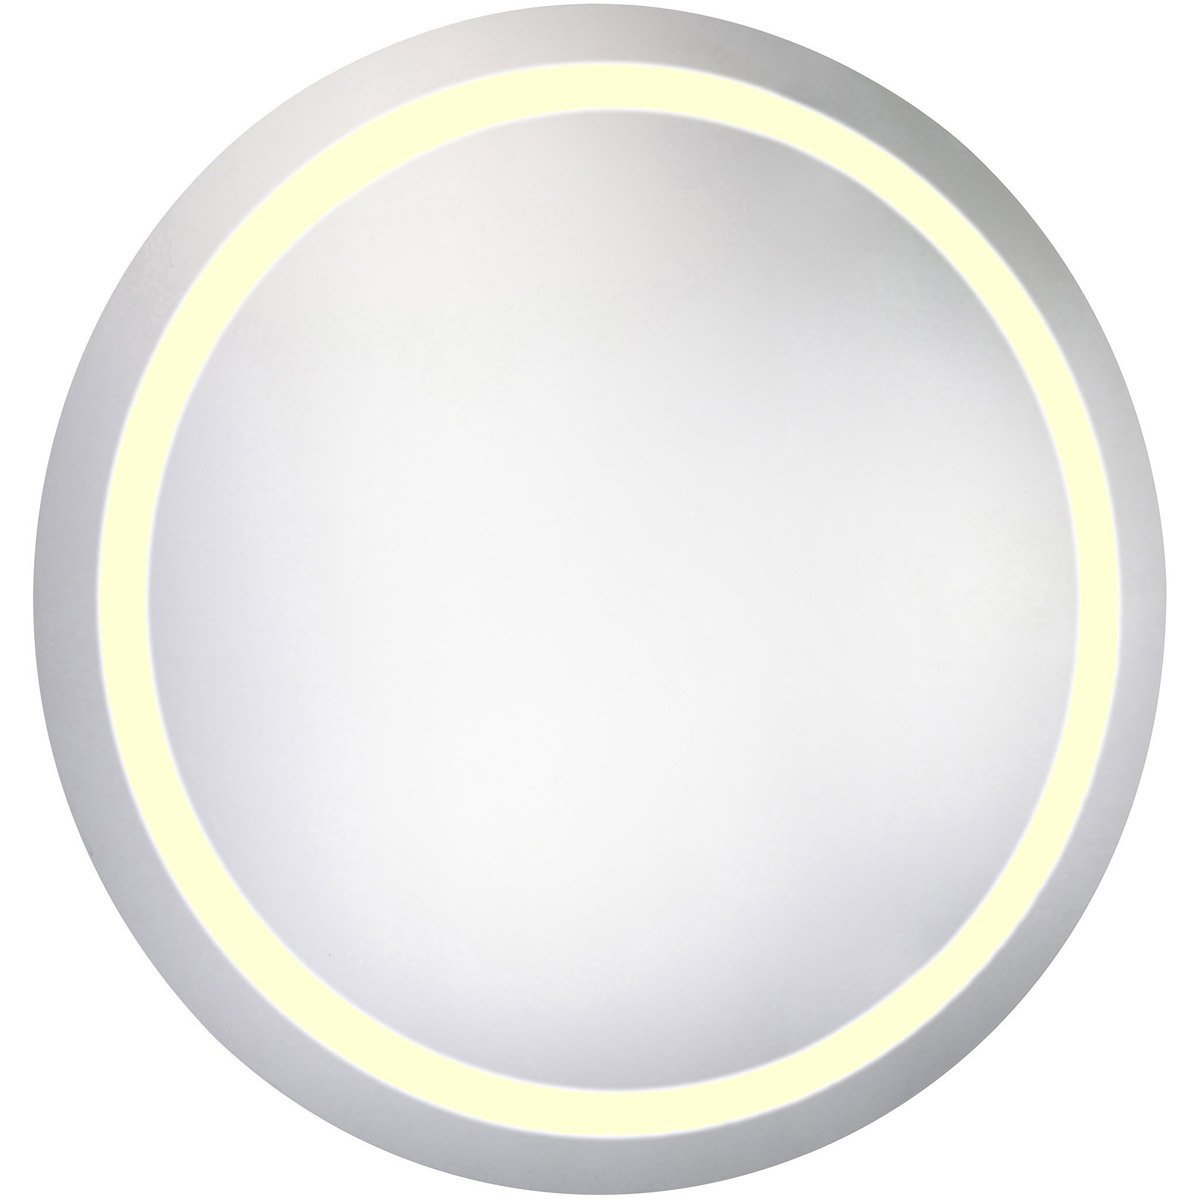 Nova 42 X 42 Hardwired Led Wall Mirror - Glossy White Finish (Mre-6017) Led Mirror